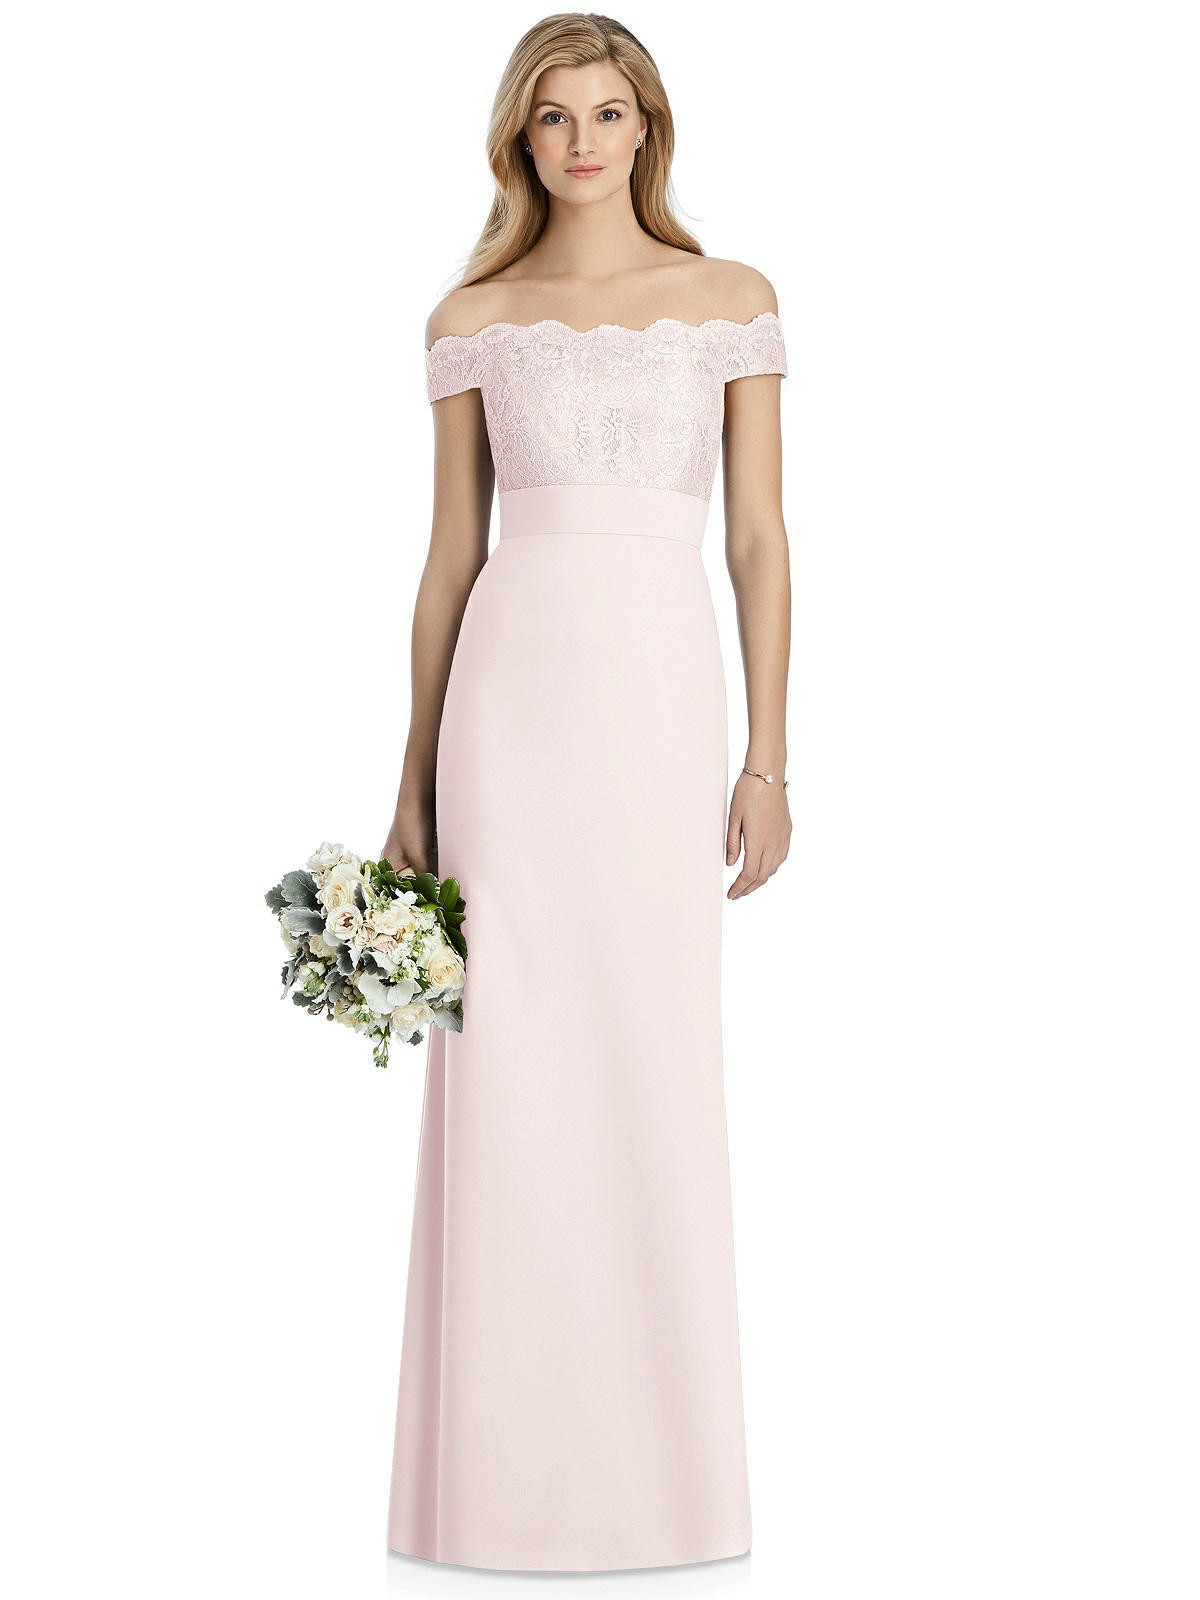 25 Blush Bridesmaid Dresses That Are Perfect For The Big Day